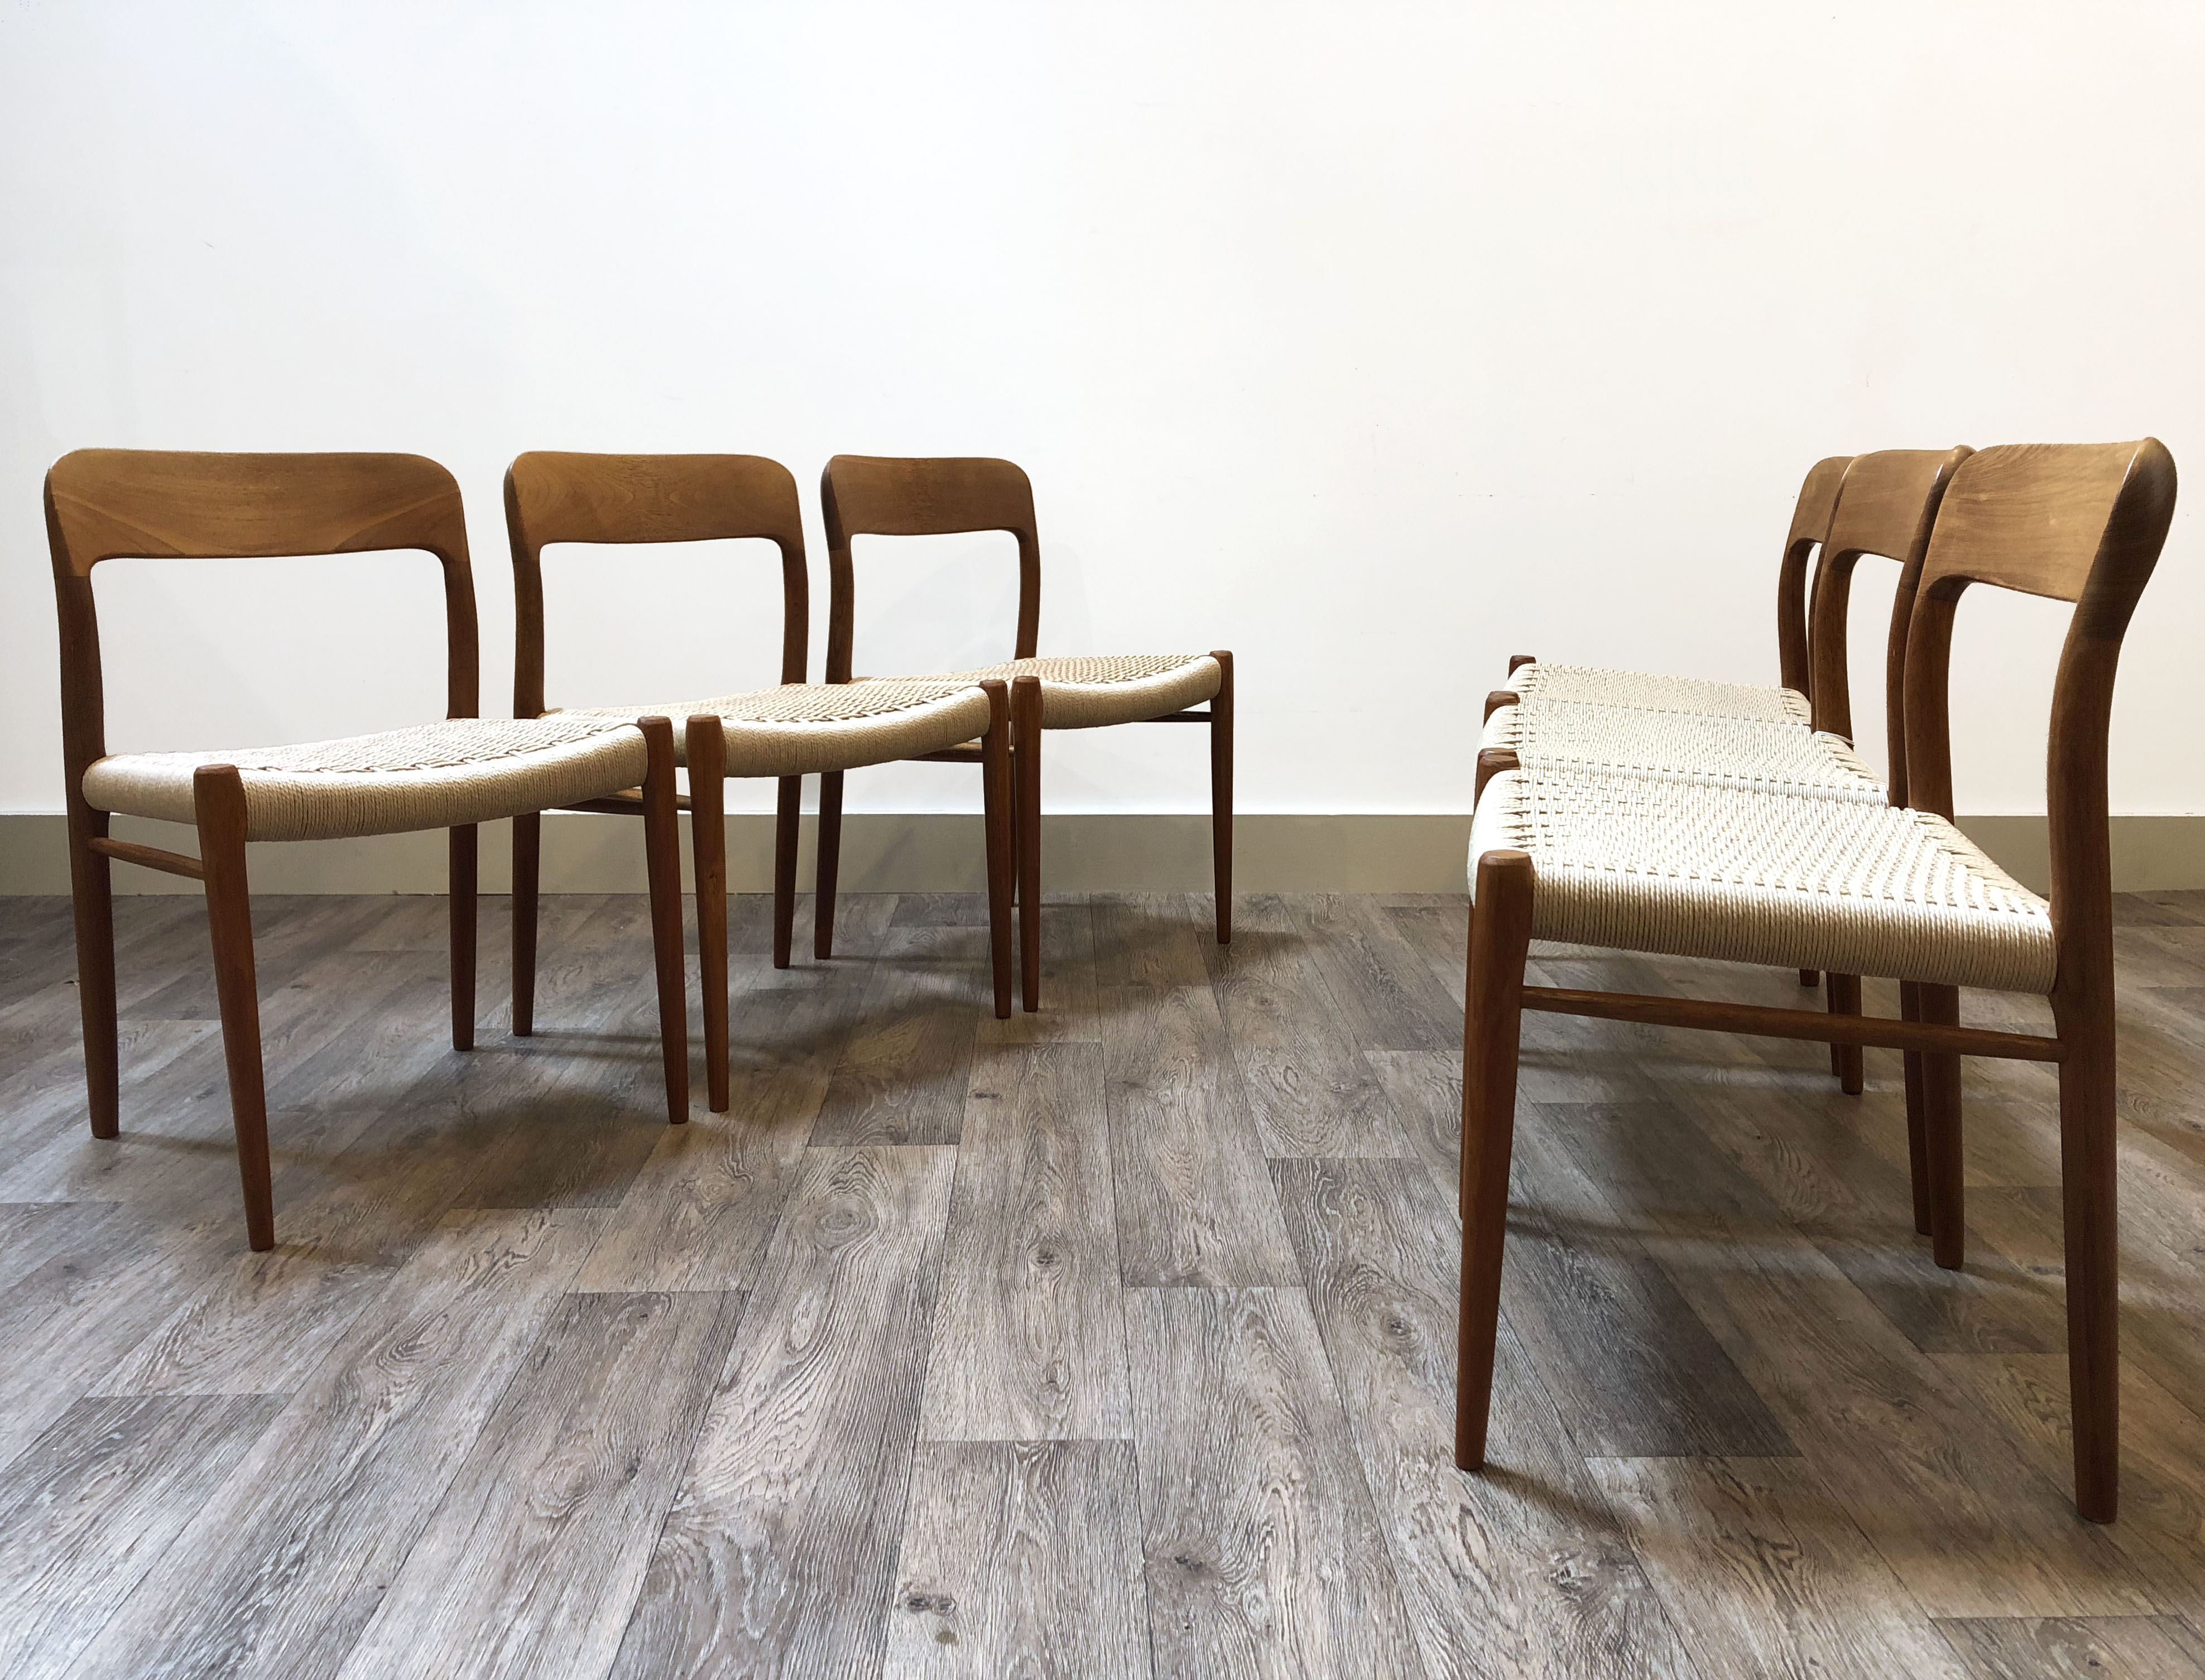 Moller 75 Chairs